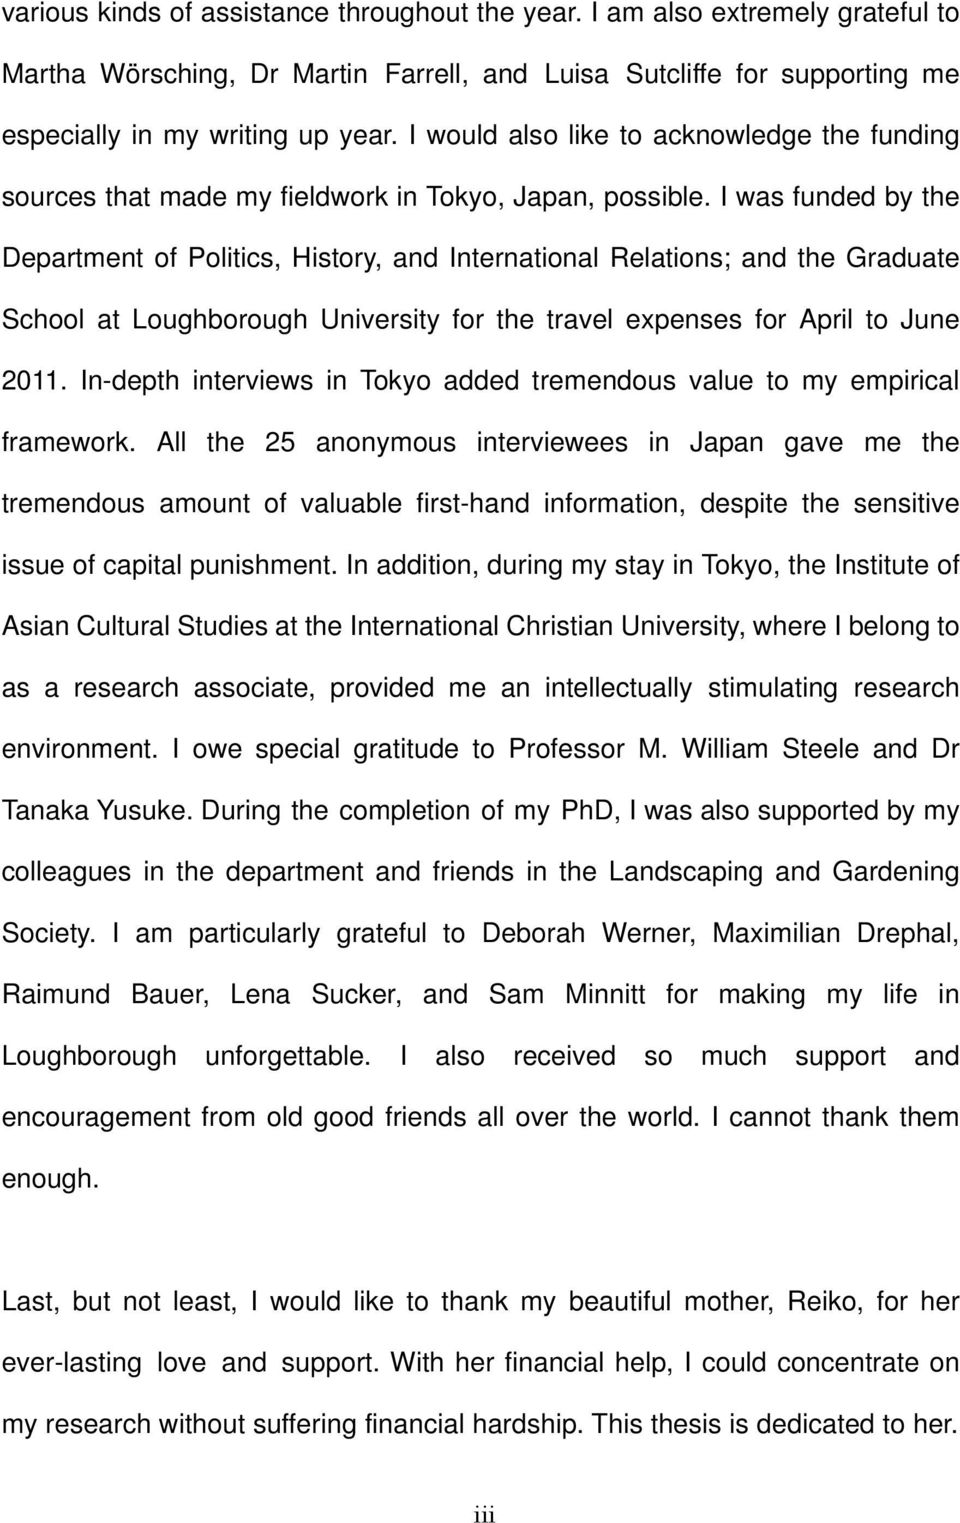 I was funded by the Department of Politics, History, and International Relations; and the Graduate School at Loughborough University for the travel expenses for April to June 2011.